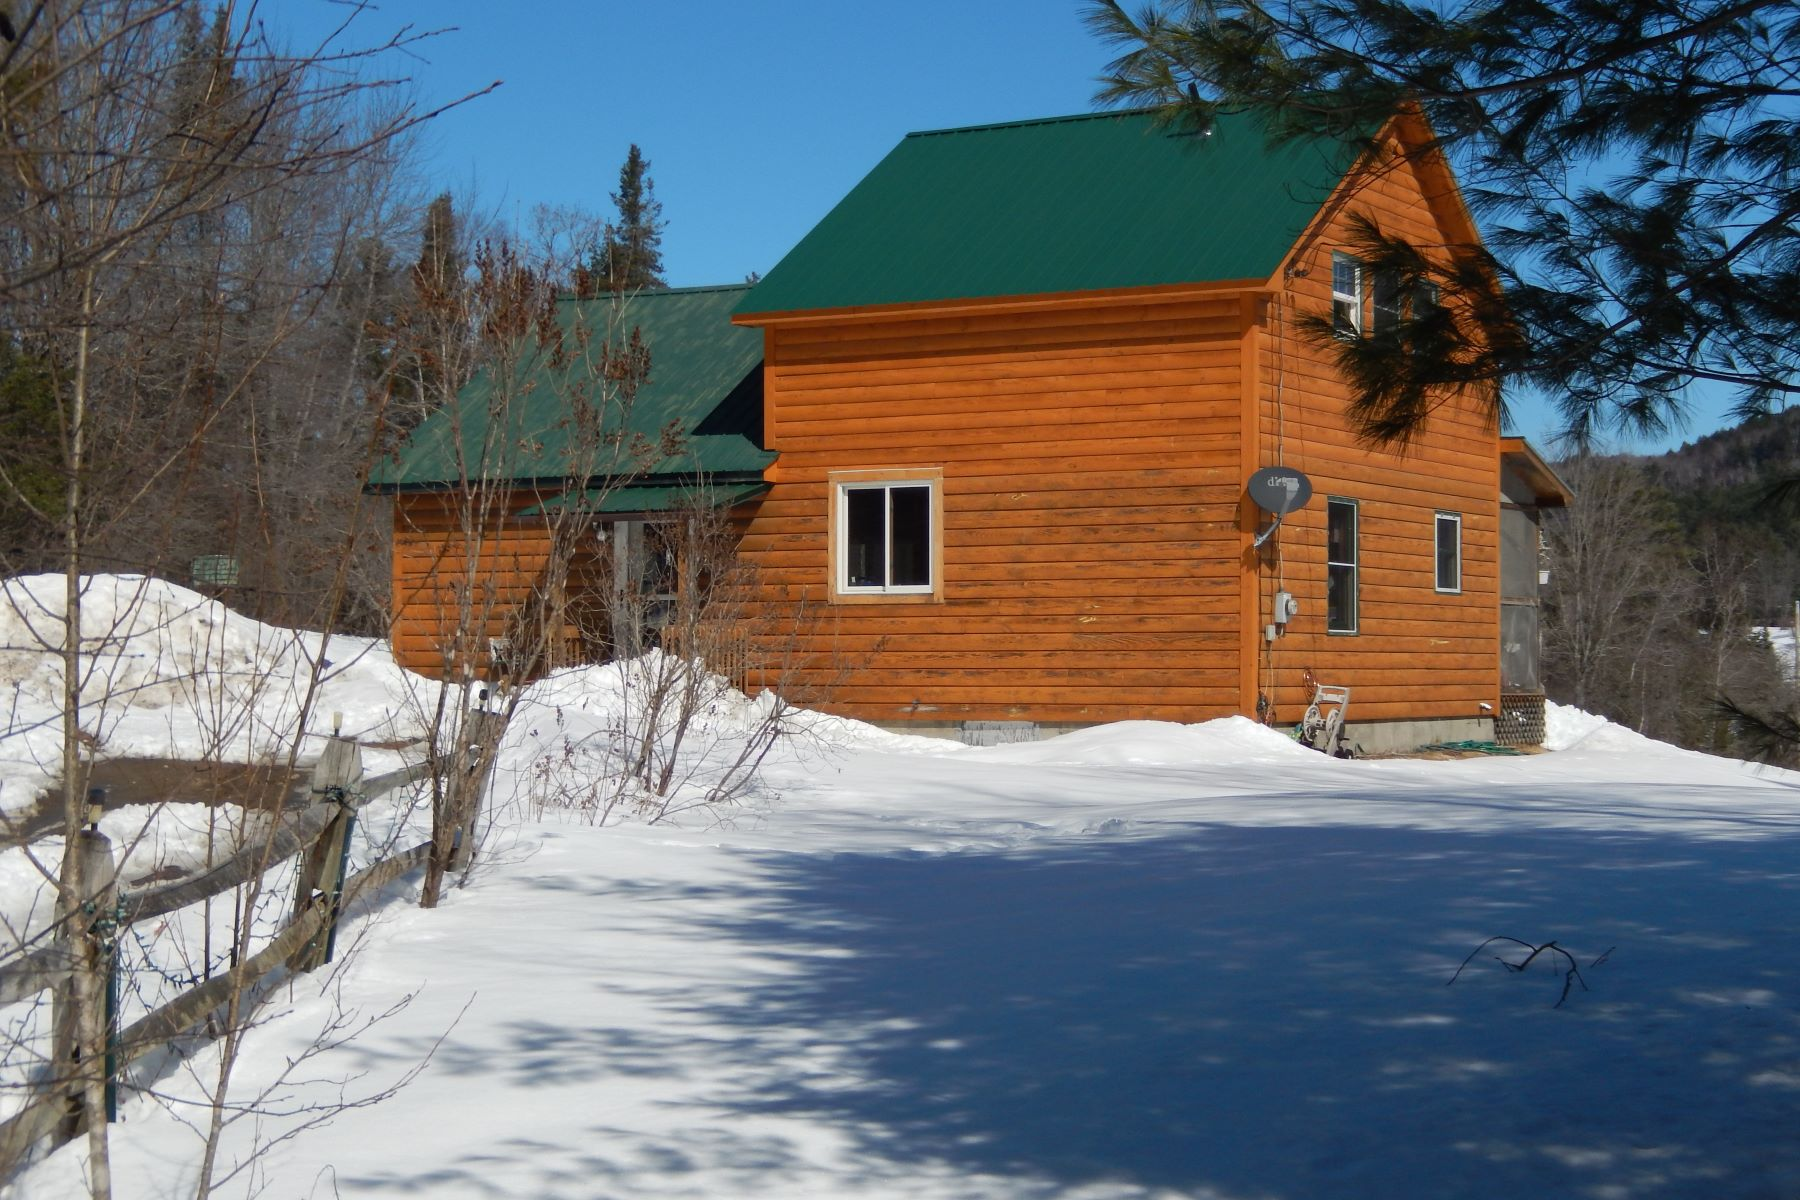 single family homes for Sale at Three Bedroom Cape in Newbury 6065 Scotch Hollow Rd Newbury, Vermont 05051 United States